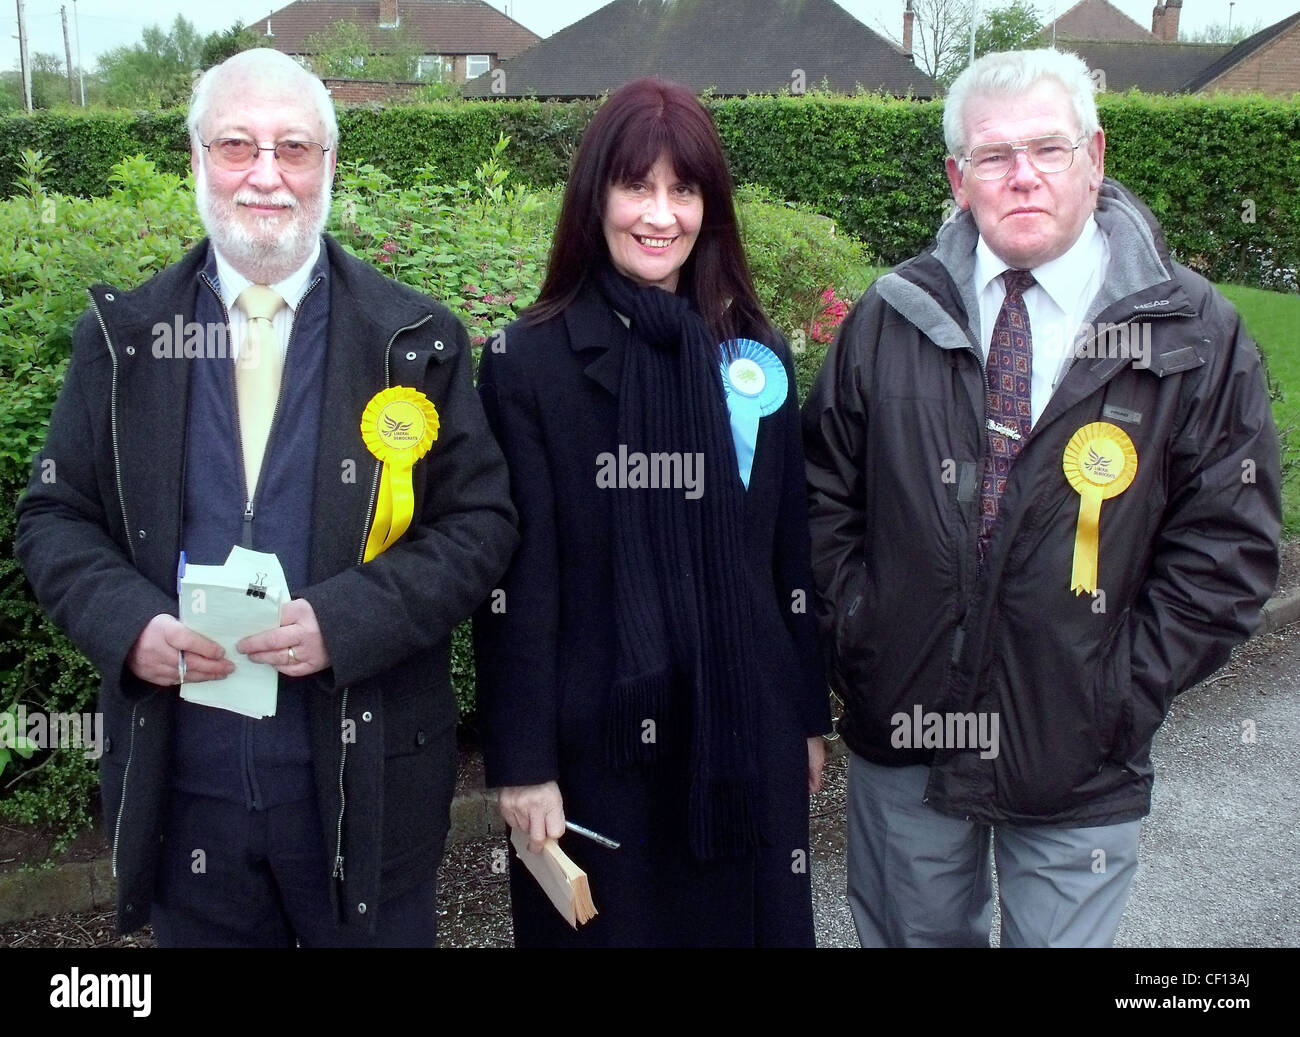 Local election candidates Liberal Tory (Conservative) outside Grappenhall polling station,Grappenhall Library,South,warrington,gotonysmith,borough,council,westminster,ward,rosettes,rosette,yellow,woman,canvas,canvassing,Ian,Fountain,Grappenhall,Heys,walled,garden,The,local,Warrington,Borough,Council,elections,also,took,place,that,day.,WBC,closed,Grappenhall,library,less,than,a,year,later.,Parish,council,collation,hung,parliament,Friends,of,Grappenhall,library,librray,gotonysmith,Buy Pictures of,Buy Images Of